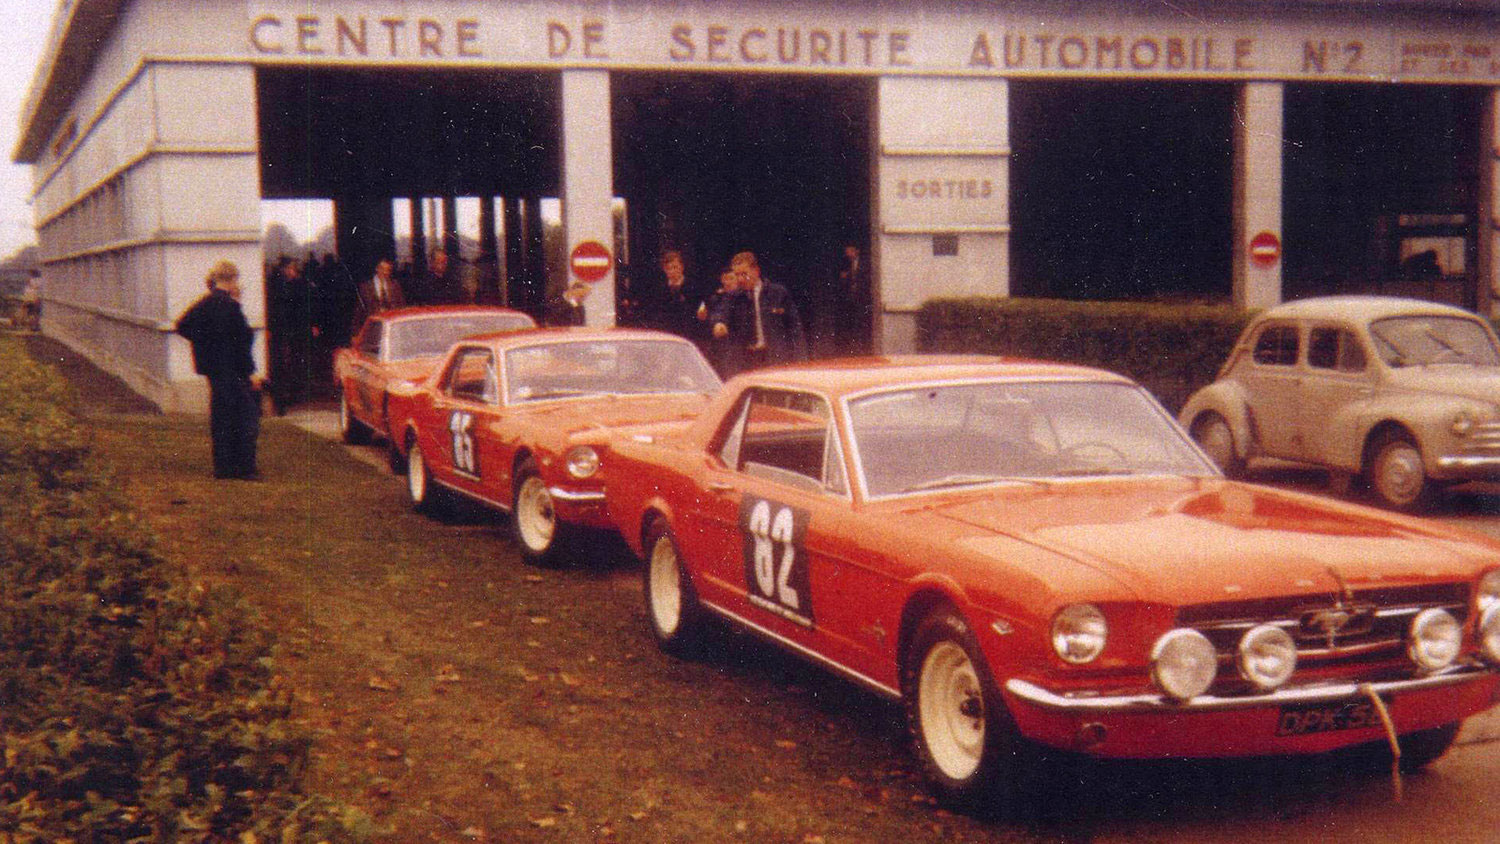 The #82 Mustang is the sole survivor of the trio that competed in the 1964 Tour de France.